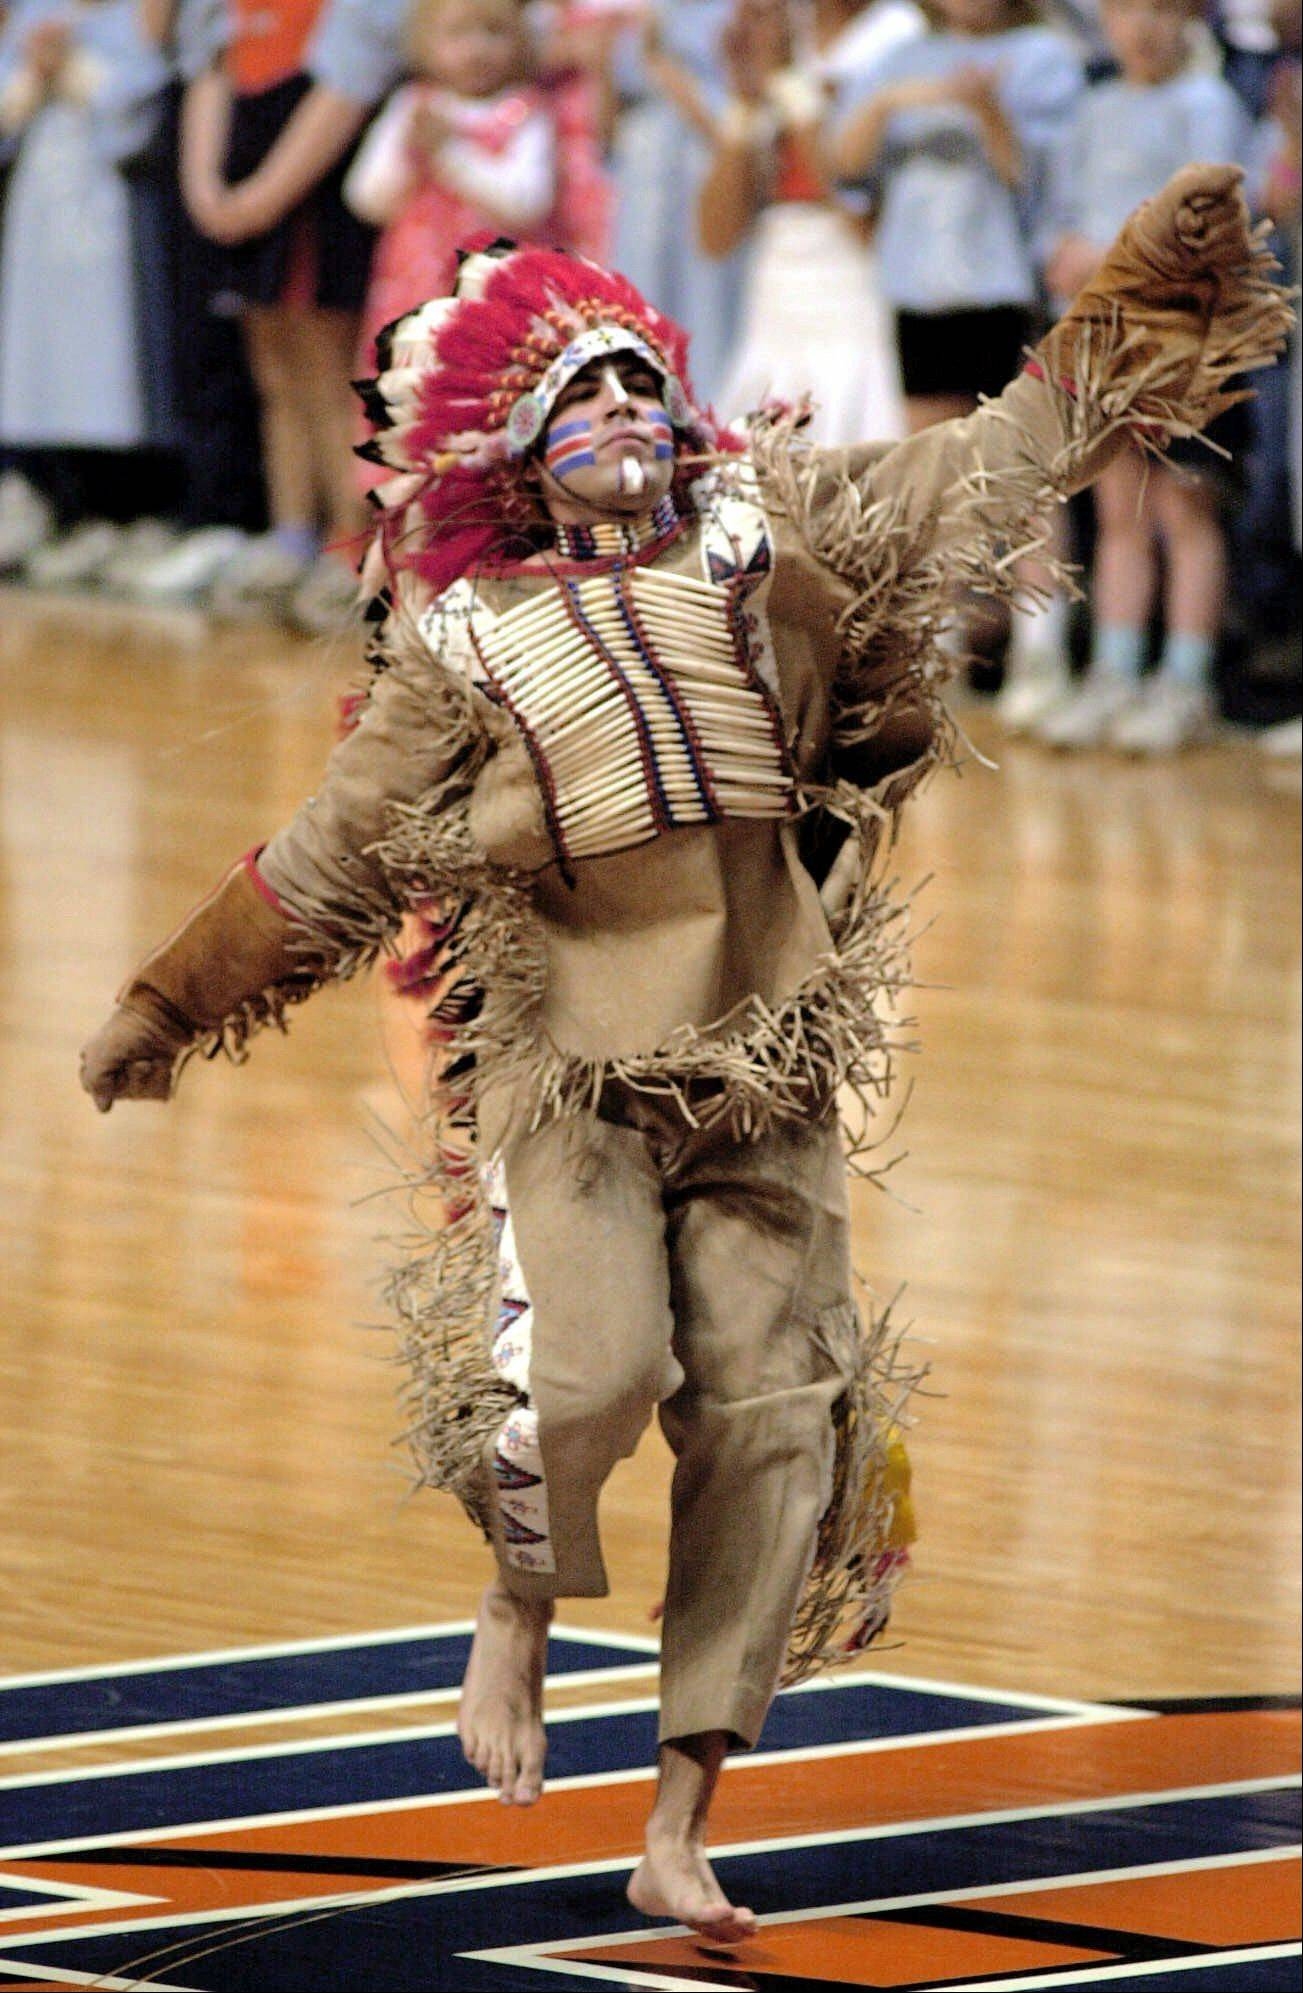 In this photo from 2000, the University of Illinois' mascot Chief Illiniwek dances for the crowd at a women's basketball game, in Champaign. The university retired Chief Illiniwek as a mascot in 2007. But the school kept the name of the Fighting Illini.